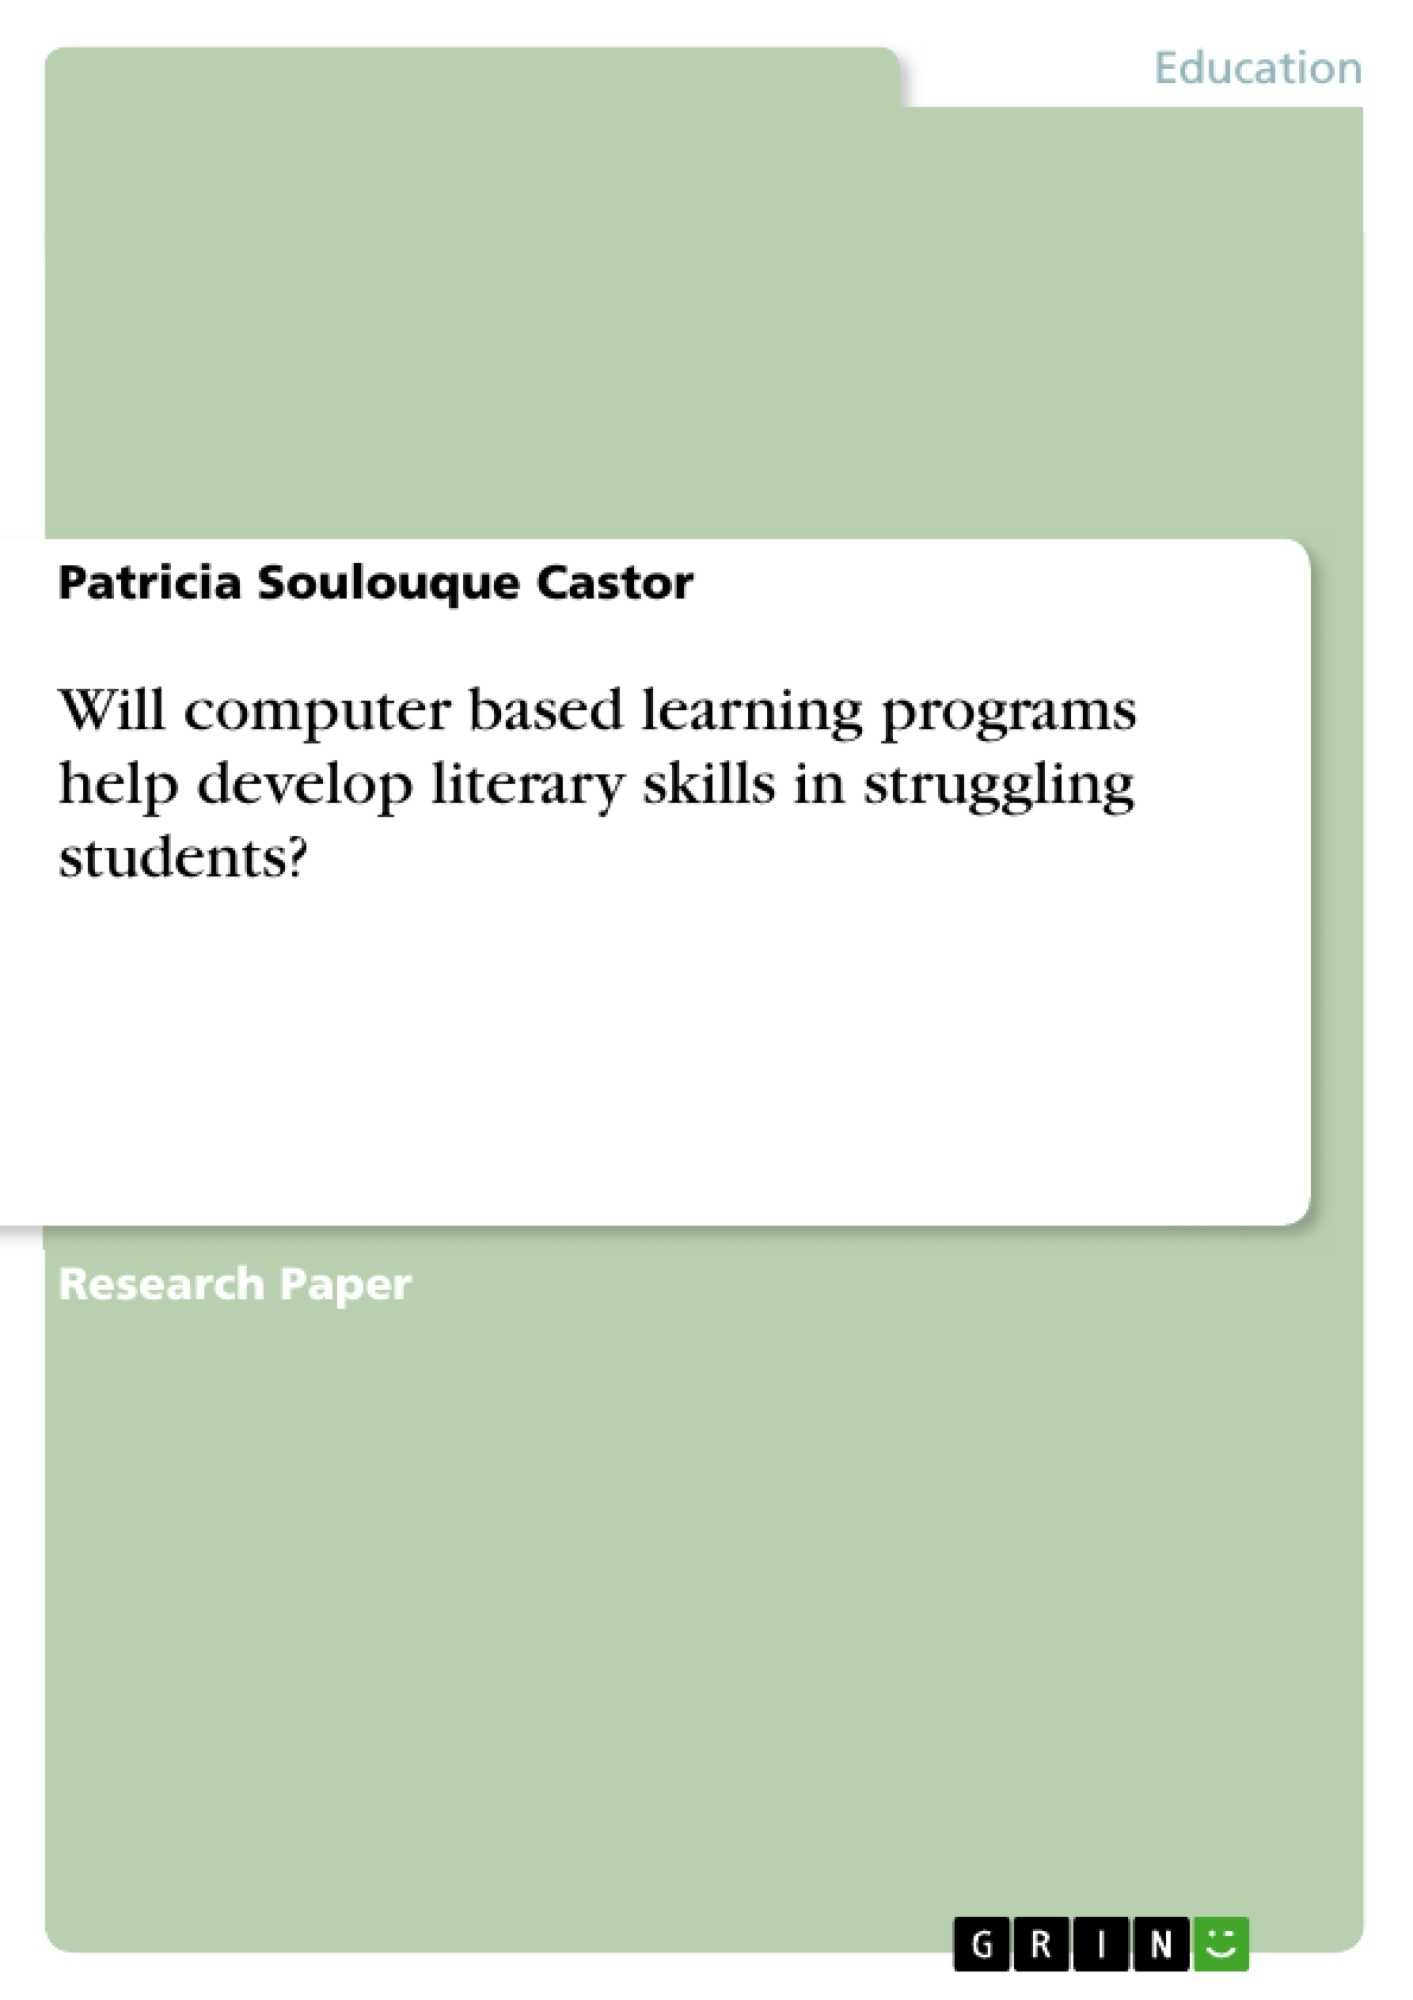 Title: Will computer based learning programs help develop literary skills in struggling students?